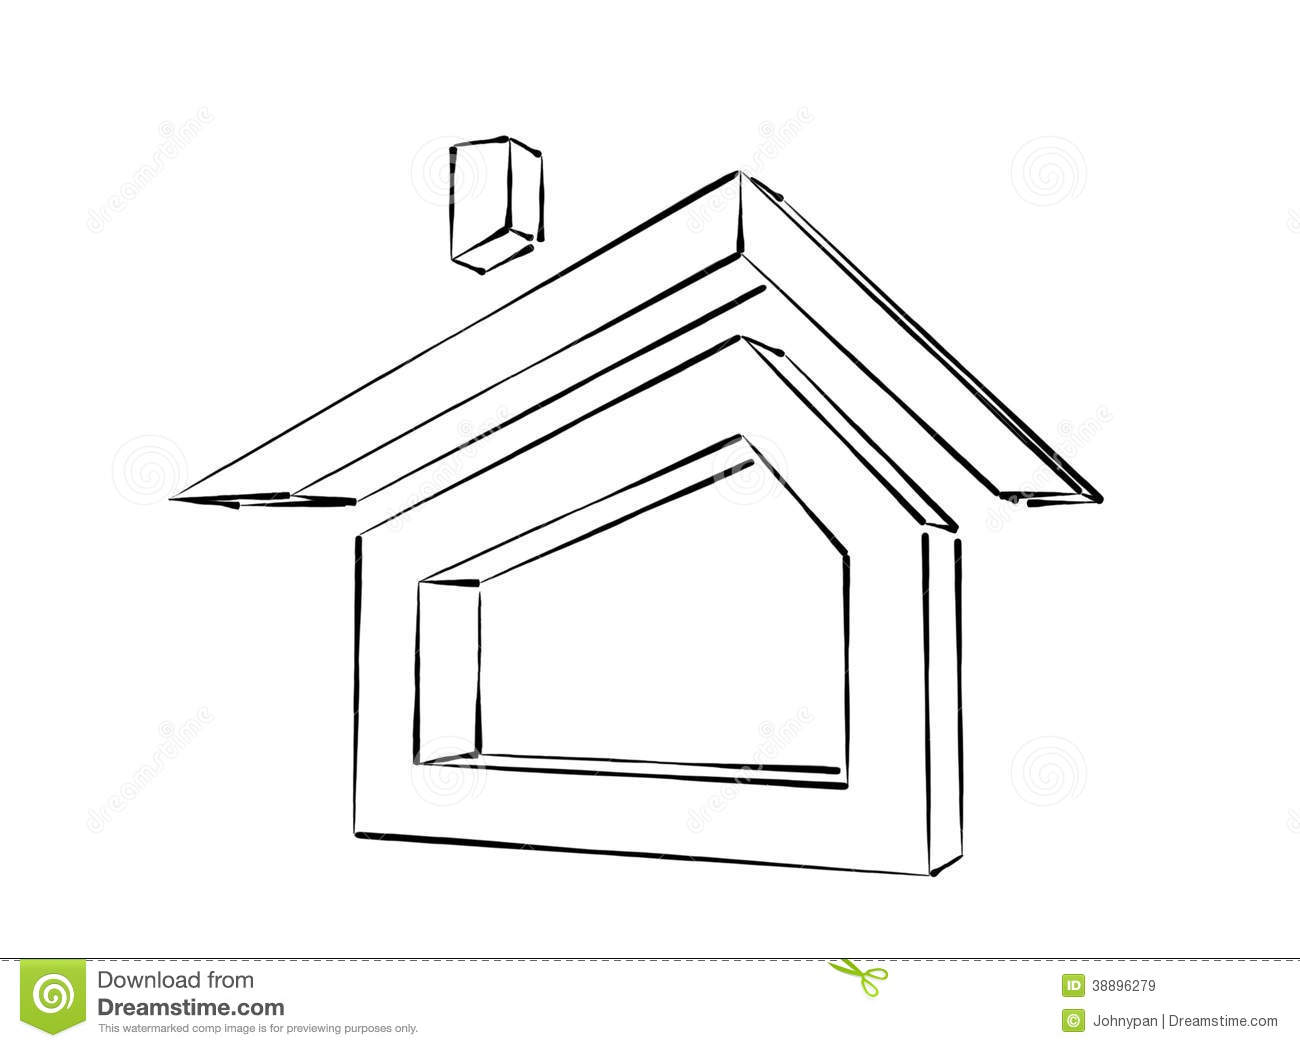 House sketch stock illustration image 38896279 for House sketches from photos